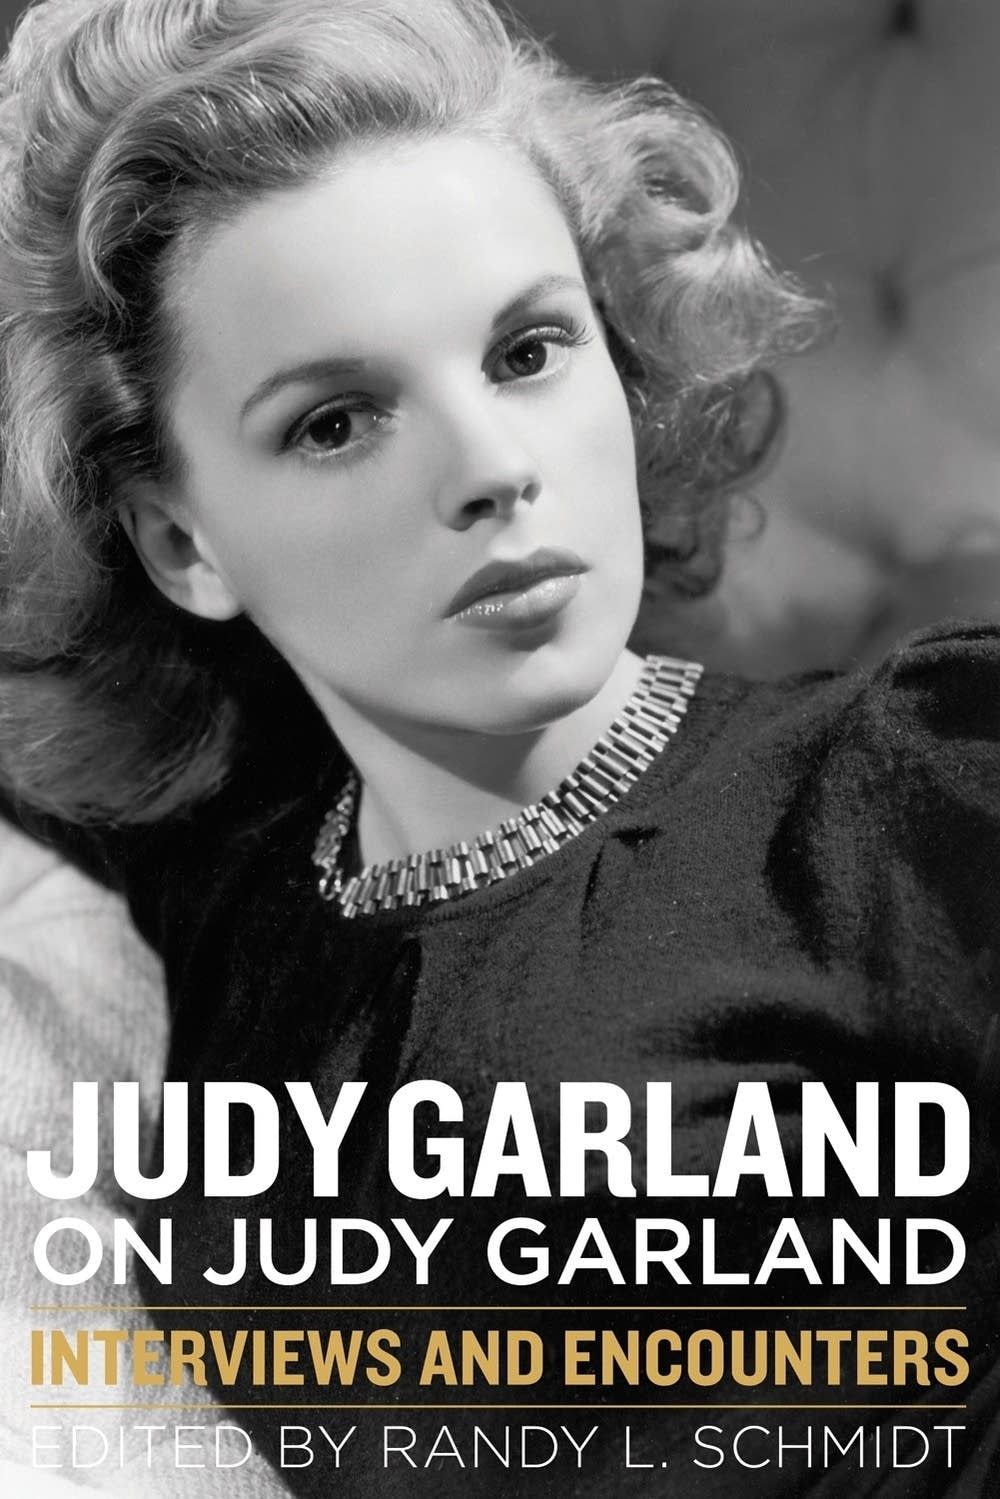 The book Judy Garland meant to write | MPR News